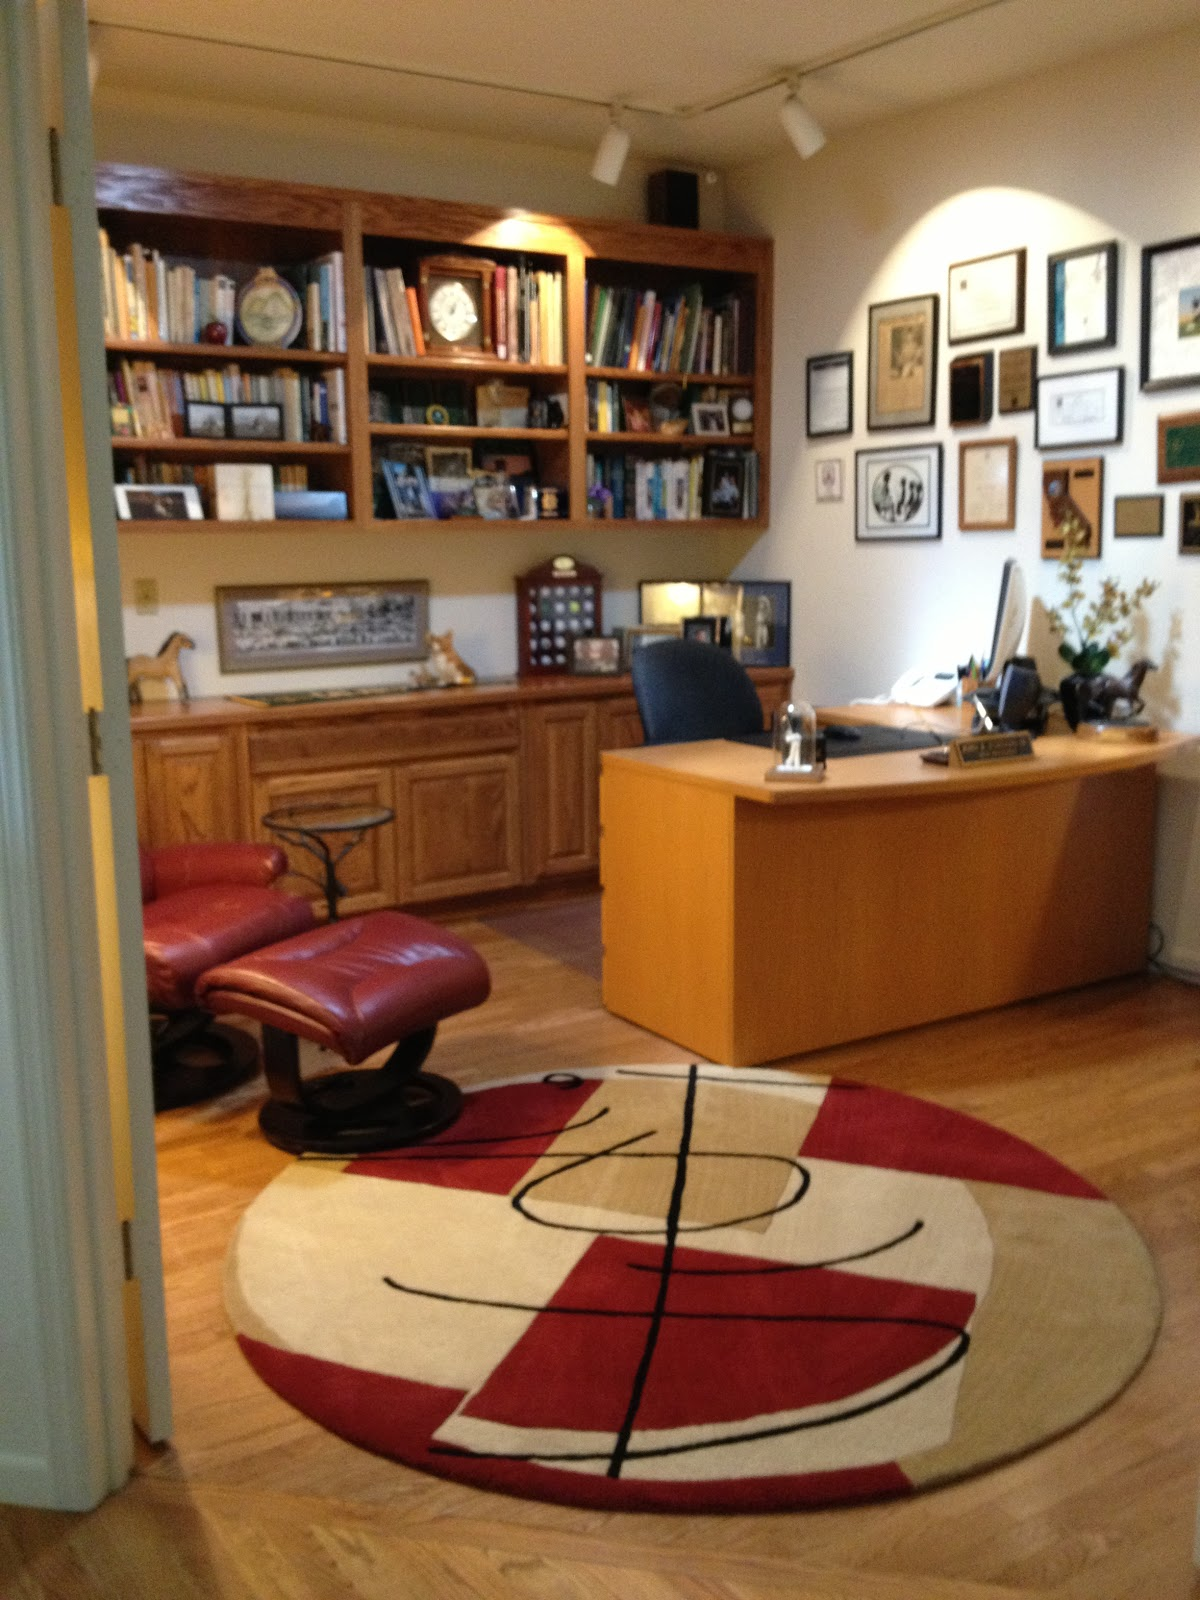 Feng shui home office design Study Office Room Feng Shui Linkedlifescom Flisolbogotainfo Feng Shui Home Office Decorating Flisol Home